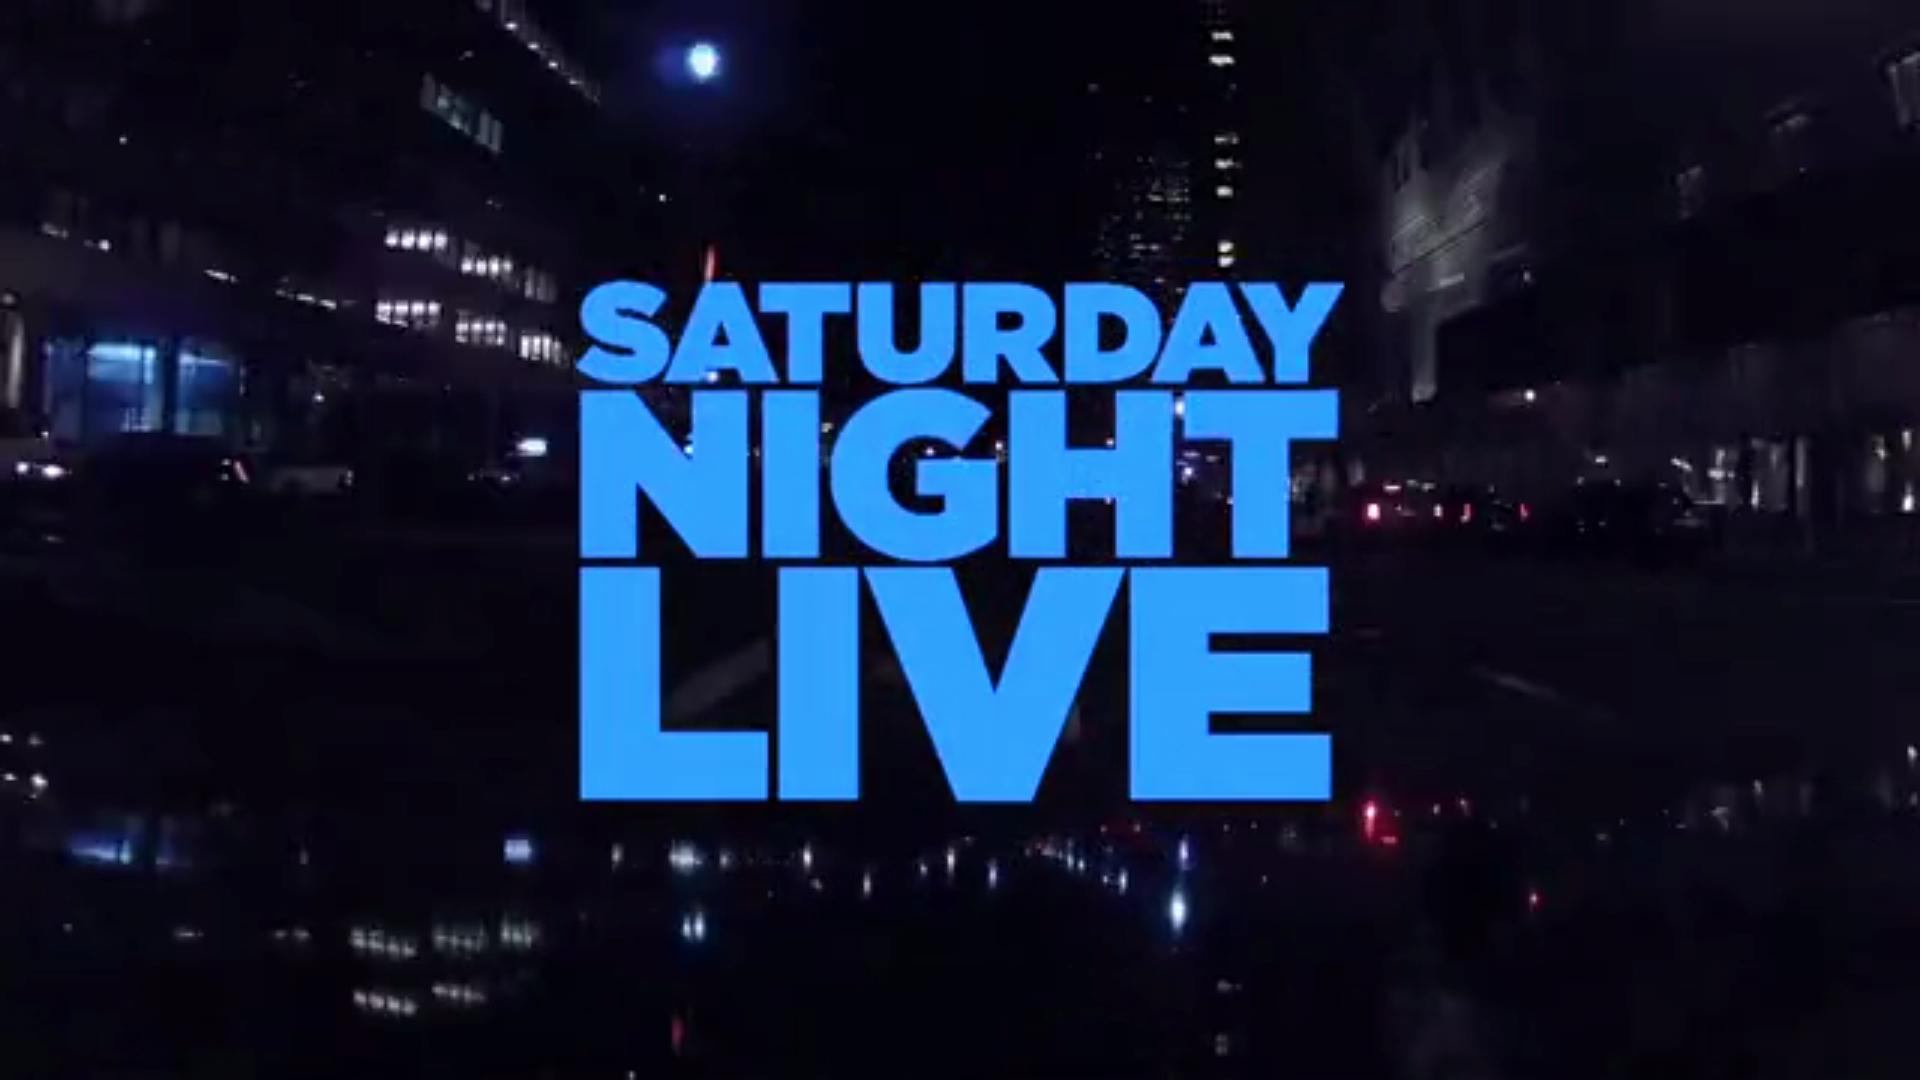 Saturday Night Live Wallpaper for PC | Full HD Pictures